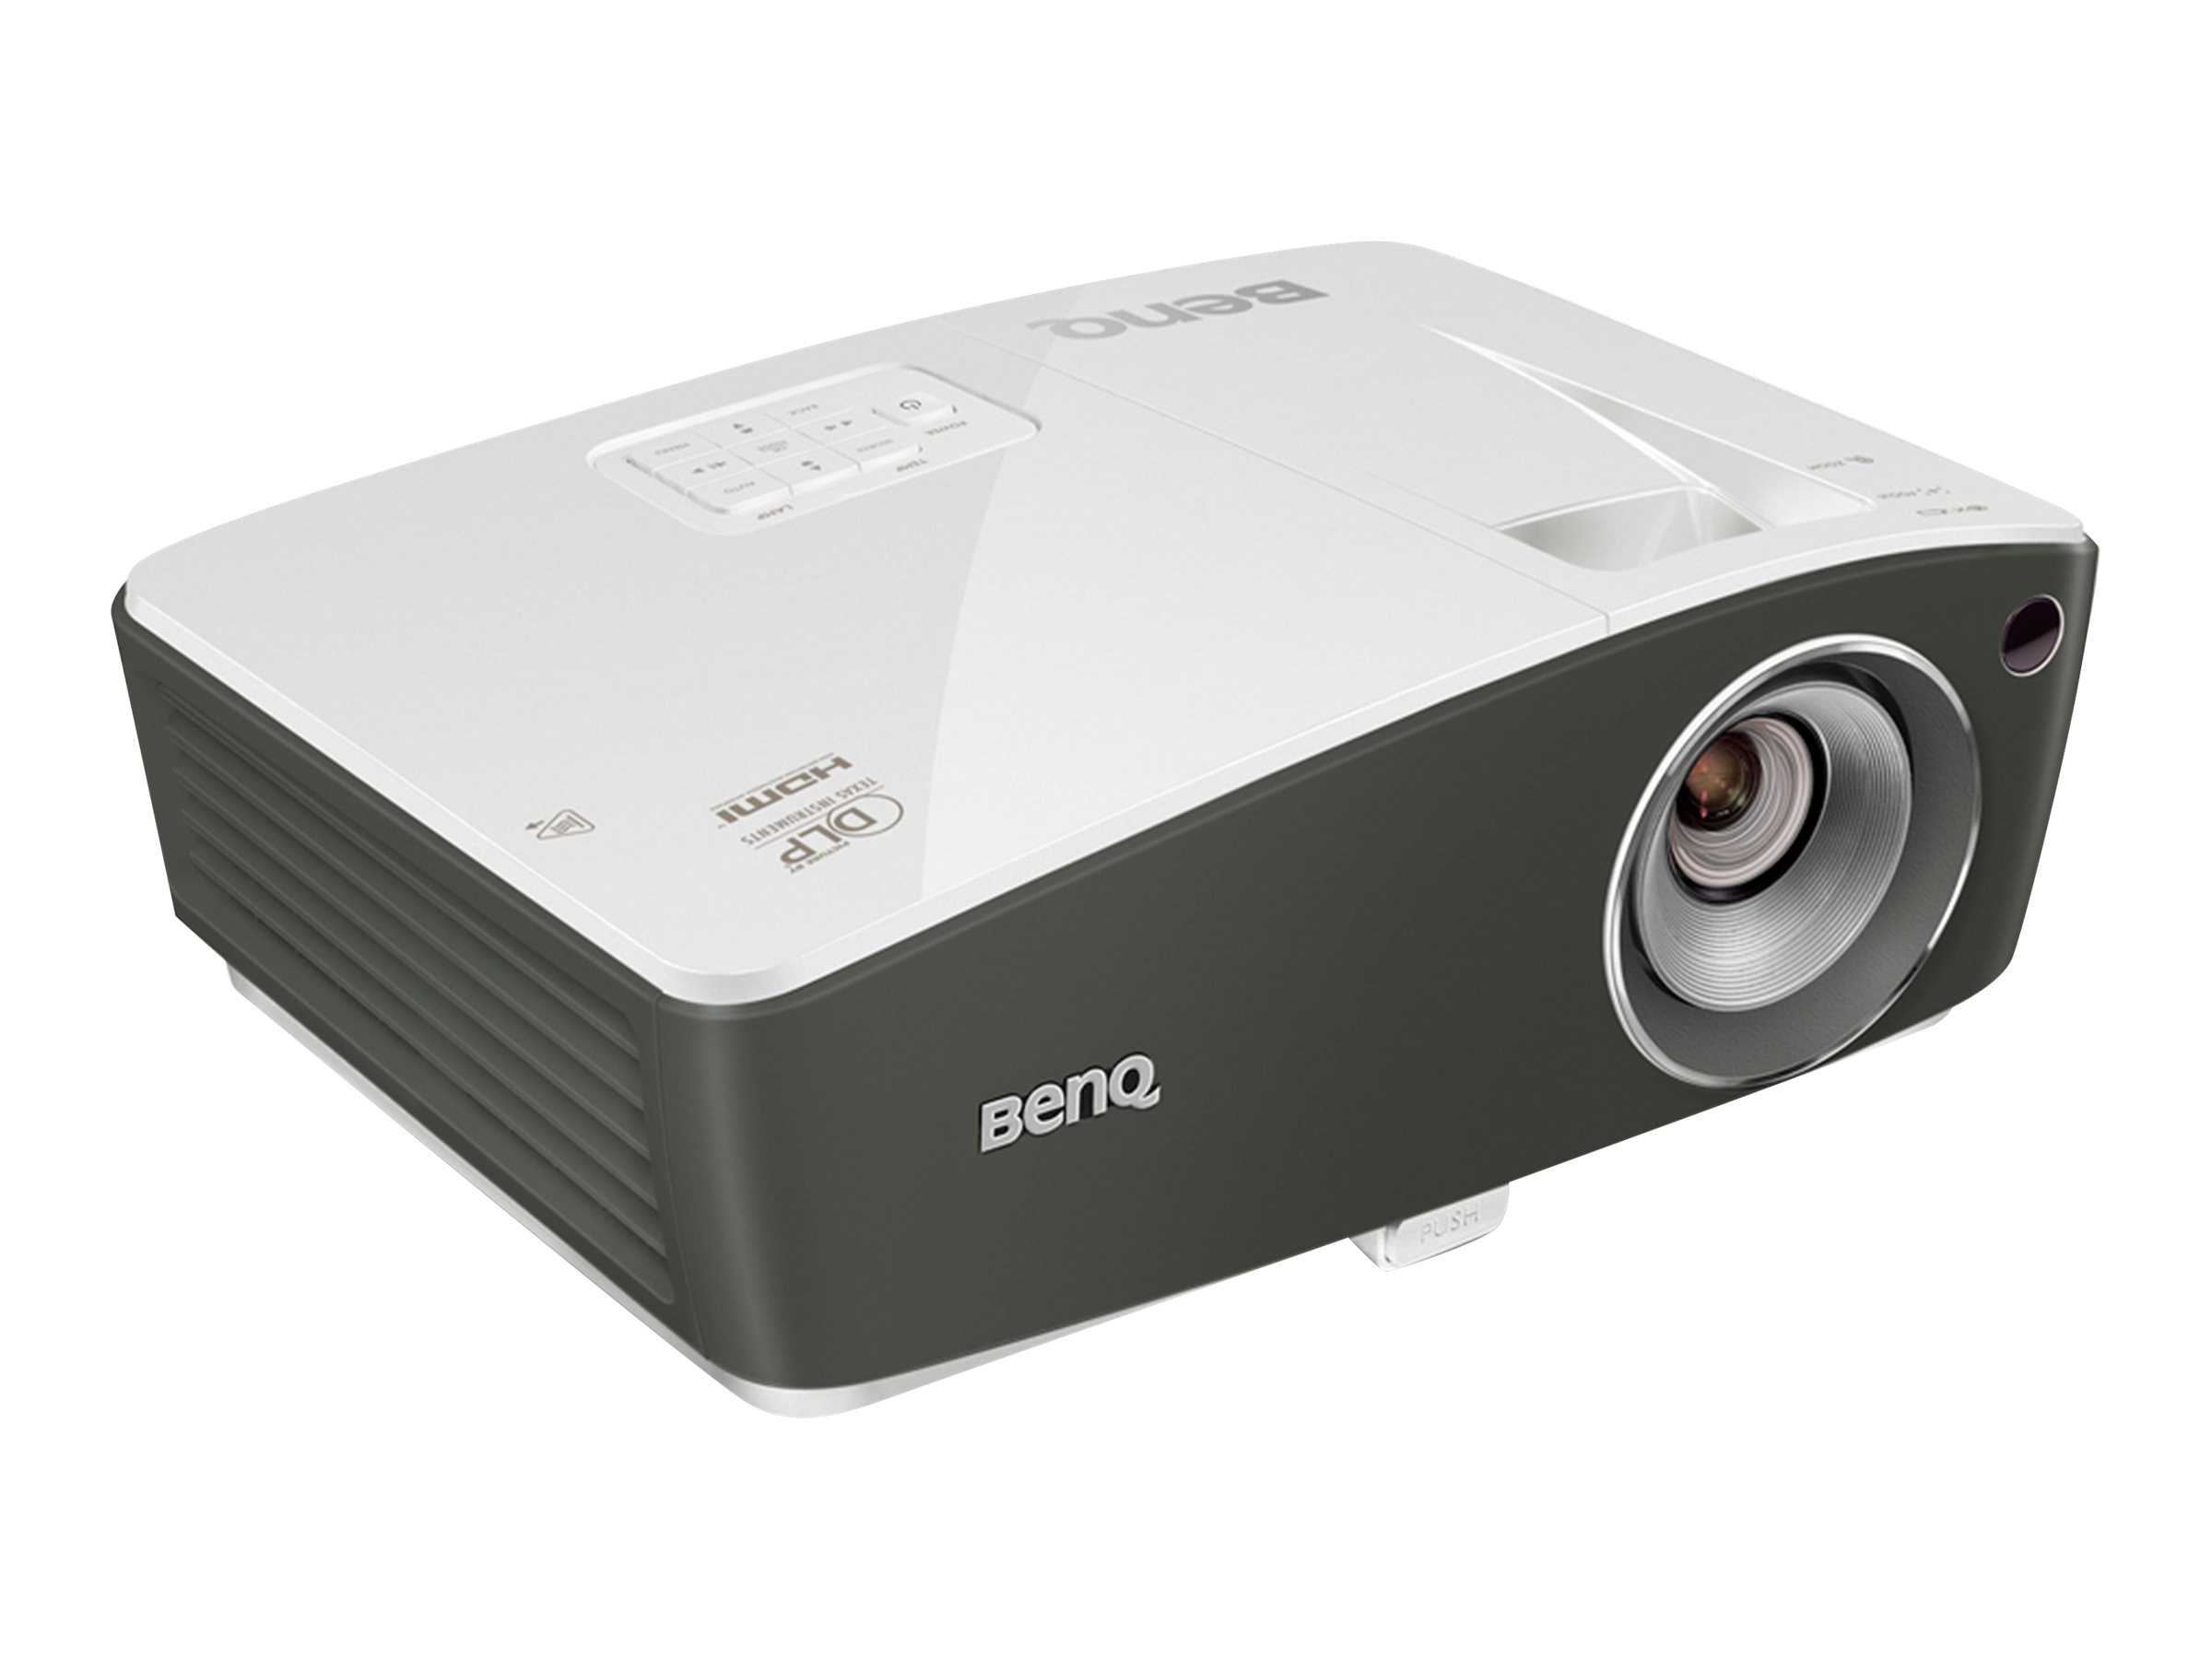 Benq TH670 1080P DLP Projector, 3000 Lumens, White Gray, TH670